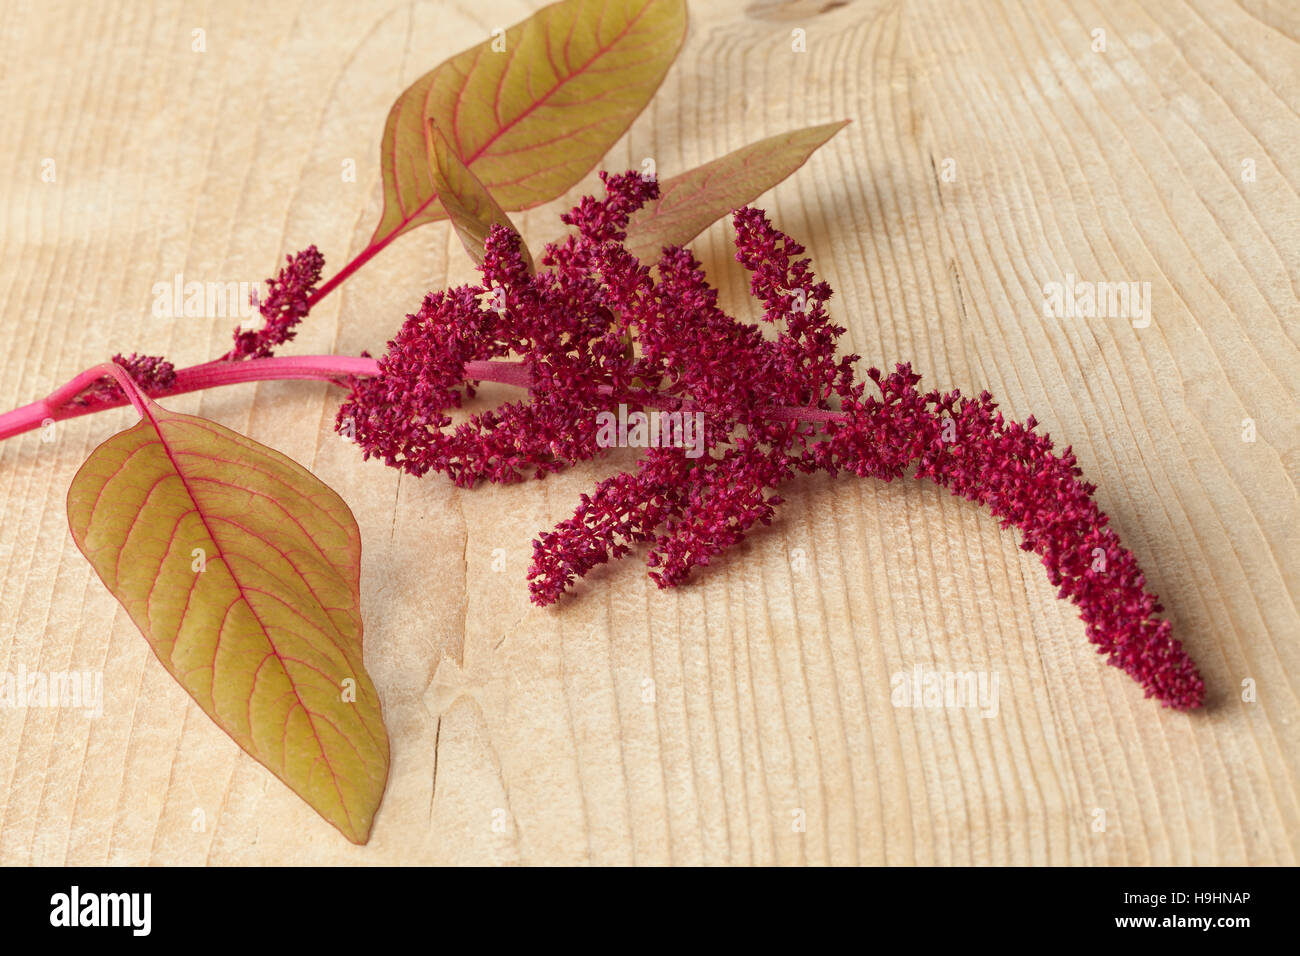 Twig with amaranth flowers close up Stock Photo